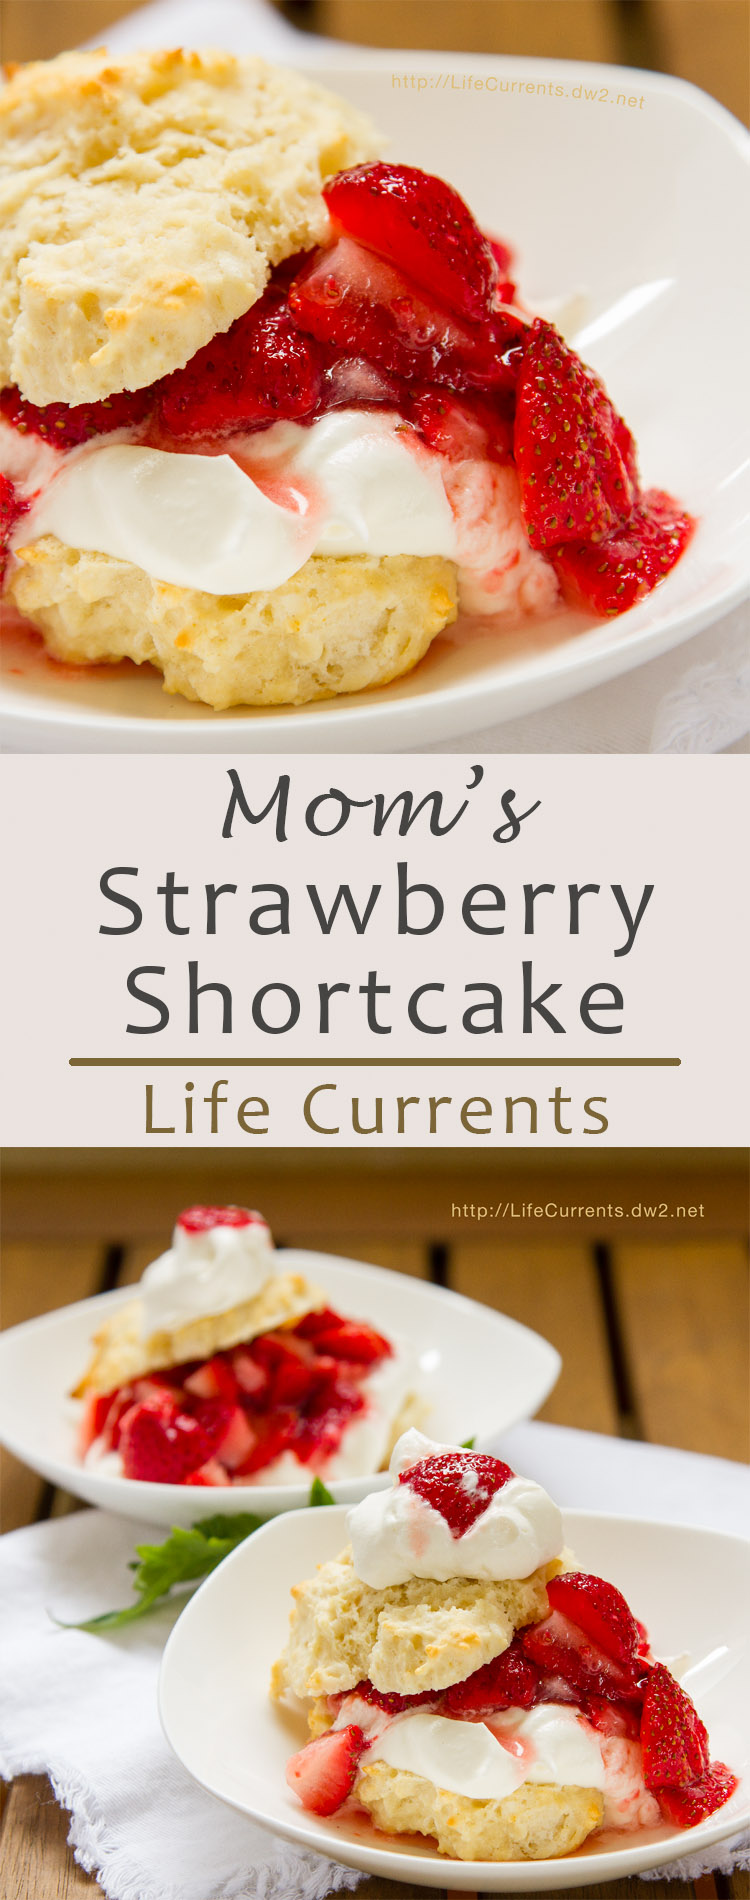 Mom's Strawberry Shortcake is perfect with fresh berries topping sweet whipped cream and warm buttermilk biscuits